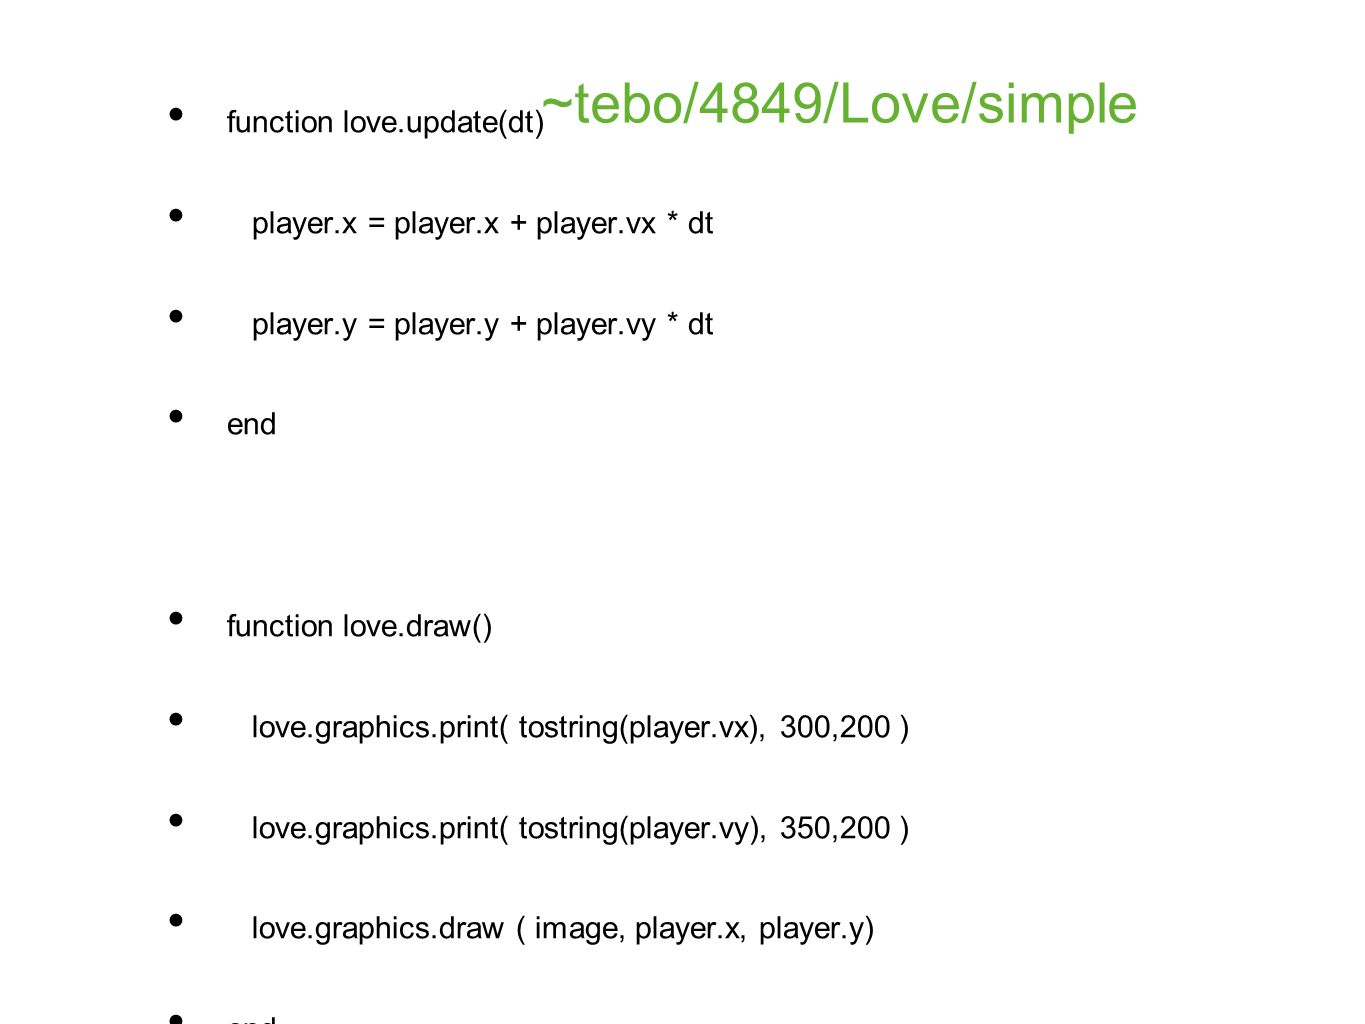 function love.load() player={} player.vx = 10 player.vy = -30 player.x = 320 player.y = 240 image = love.graphics.newImage( masonic-eye.jpg ) end function love.update(dt) player.x = player.x + player.vx * dt player.y = player.y + player.vy * dt end function love.draw() love.graphics.print( tostring(player.vx), 300,200 ) love.graphics.print( tostring(player.vy), 350,200 ) love.graphics.draw ( image, player.x, player.y) end function love.mousepressed ( x,y, button ) if button == l then player.x = x player.y = y end ~tebo/4849/Love/simple